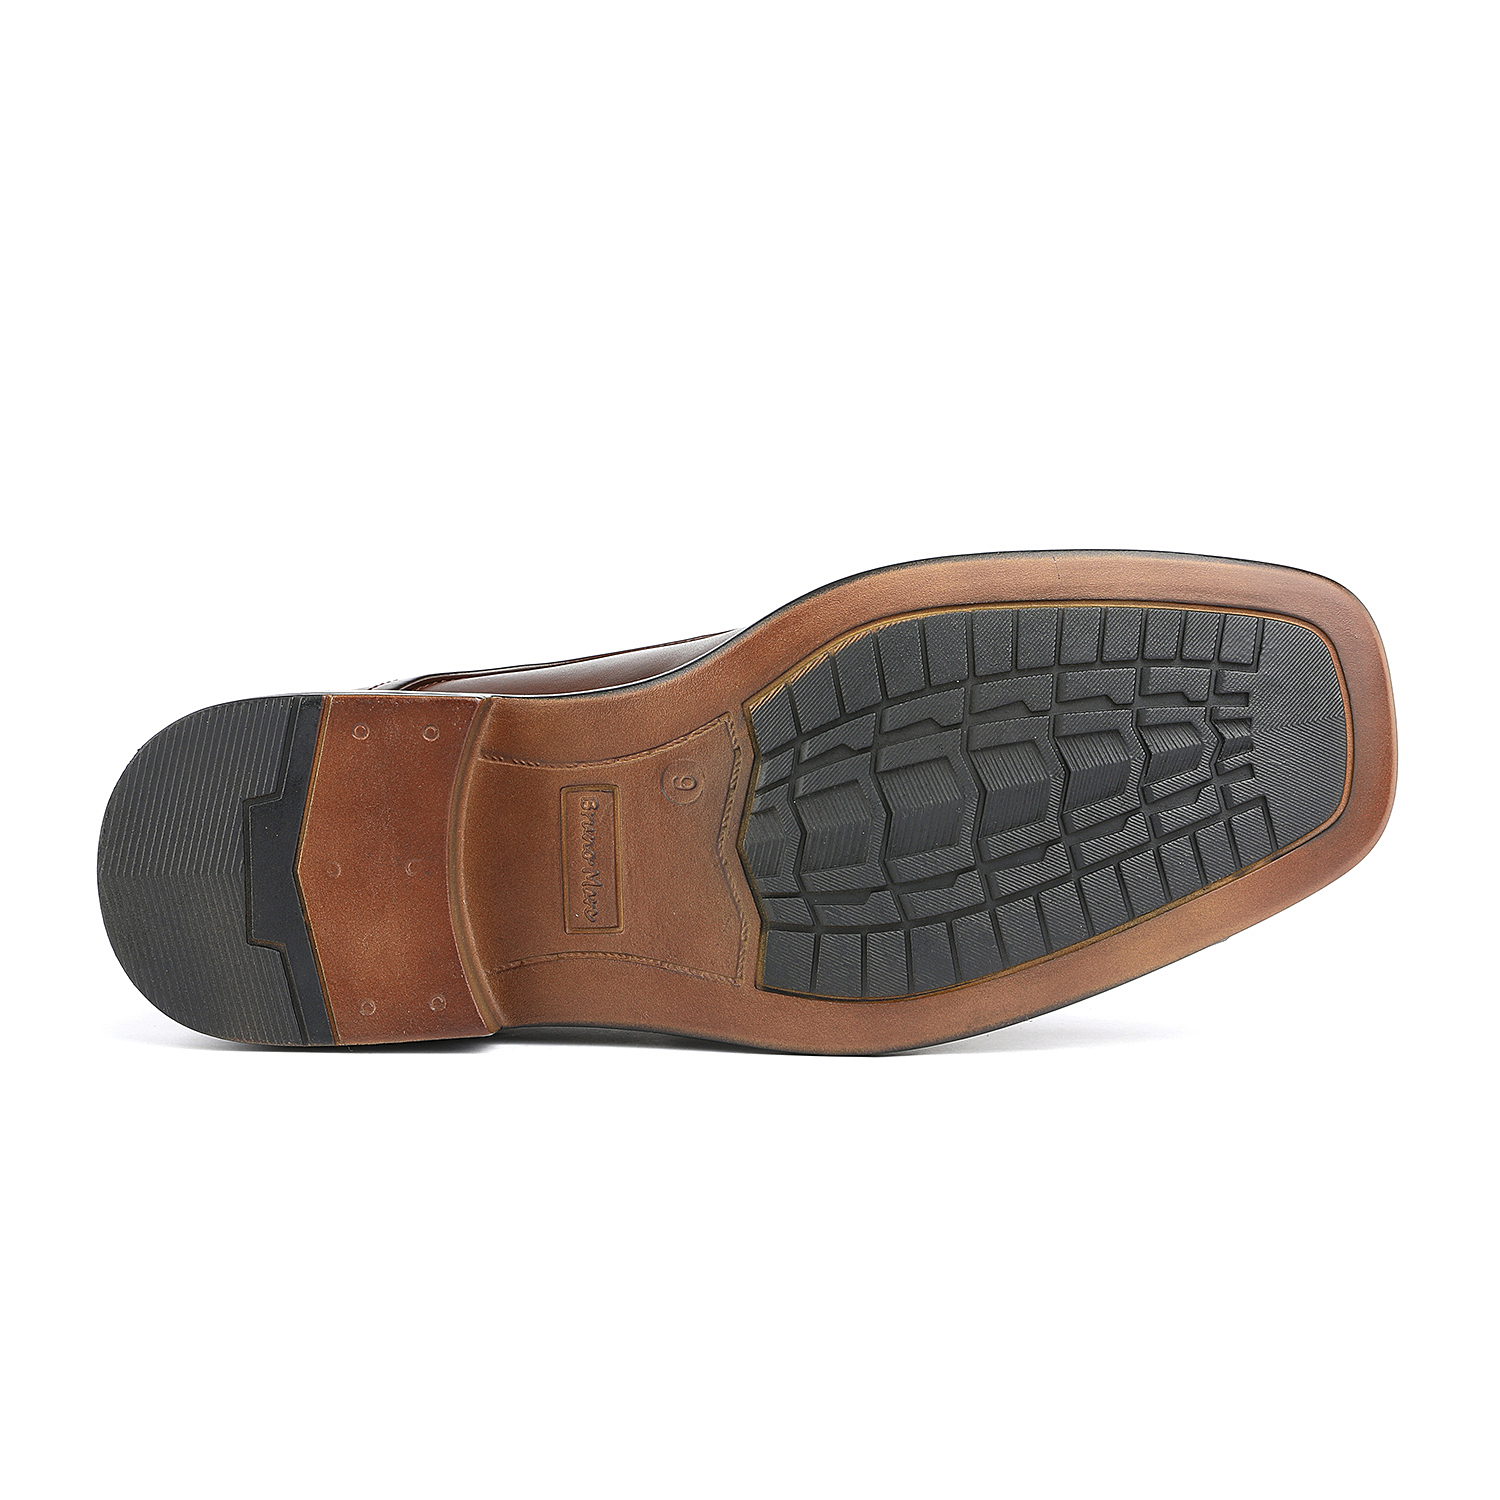 BRUNO-MARC-Men-STATE-Formal-Square-Toe-Leather-Lined-Slip-On-Dress-Loafers-Shoes thumbnail 33